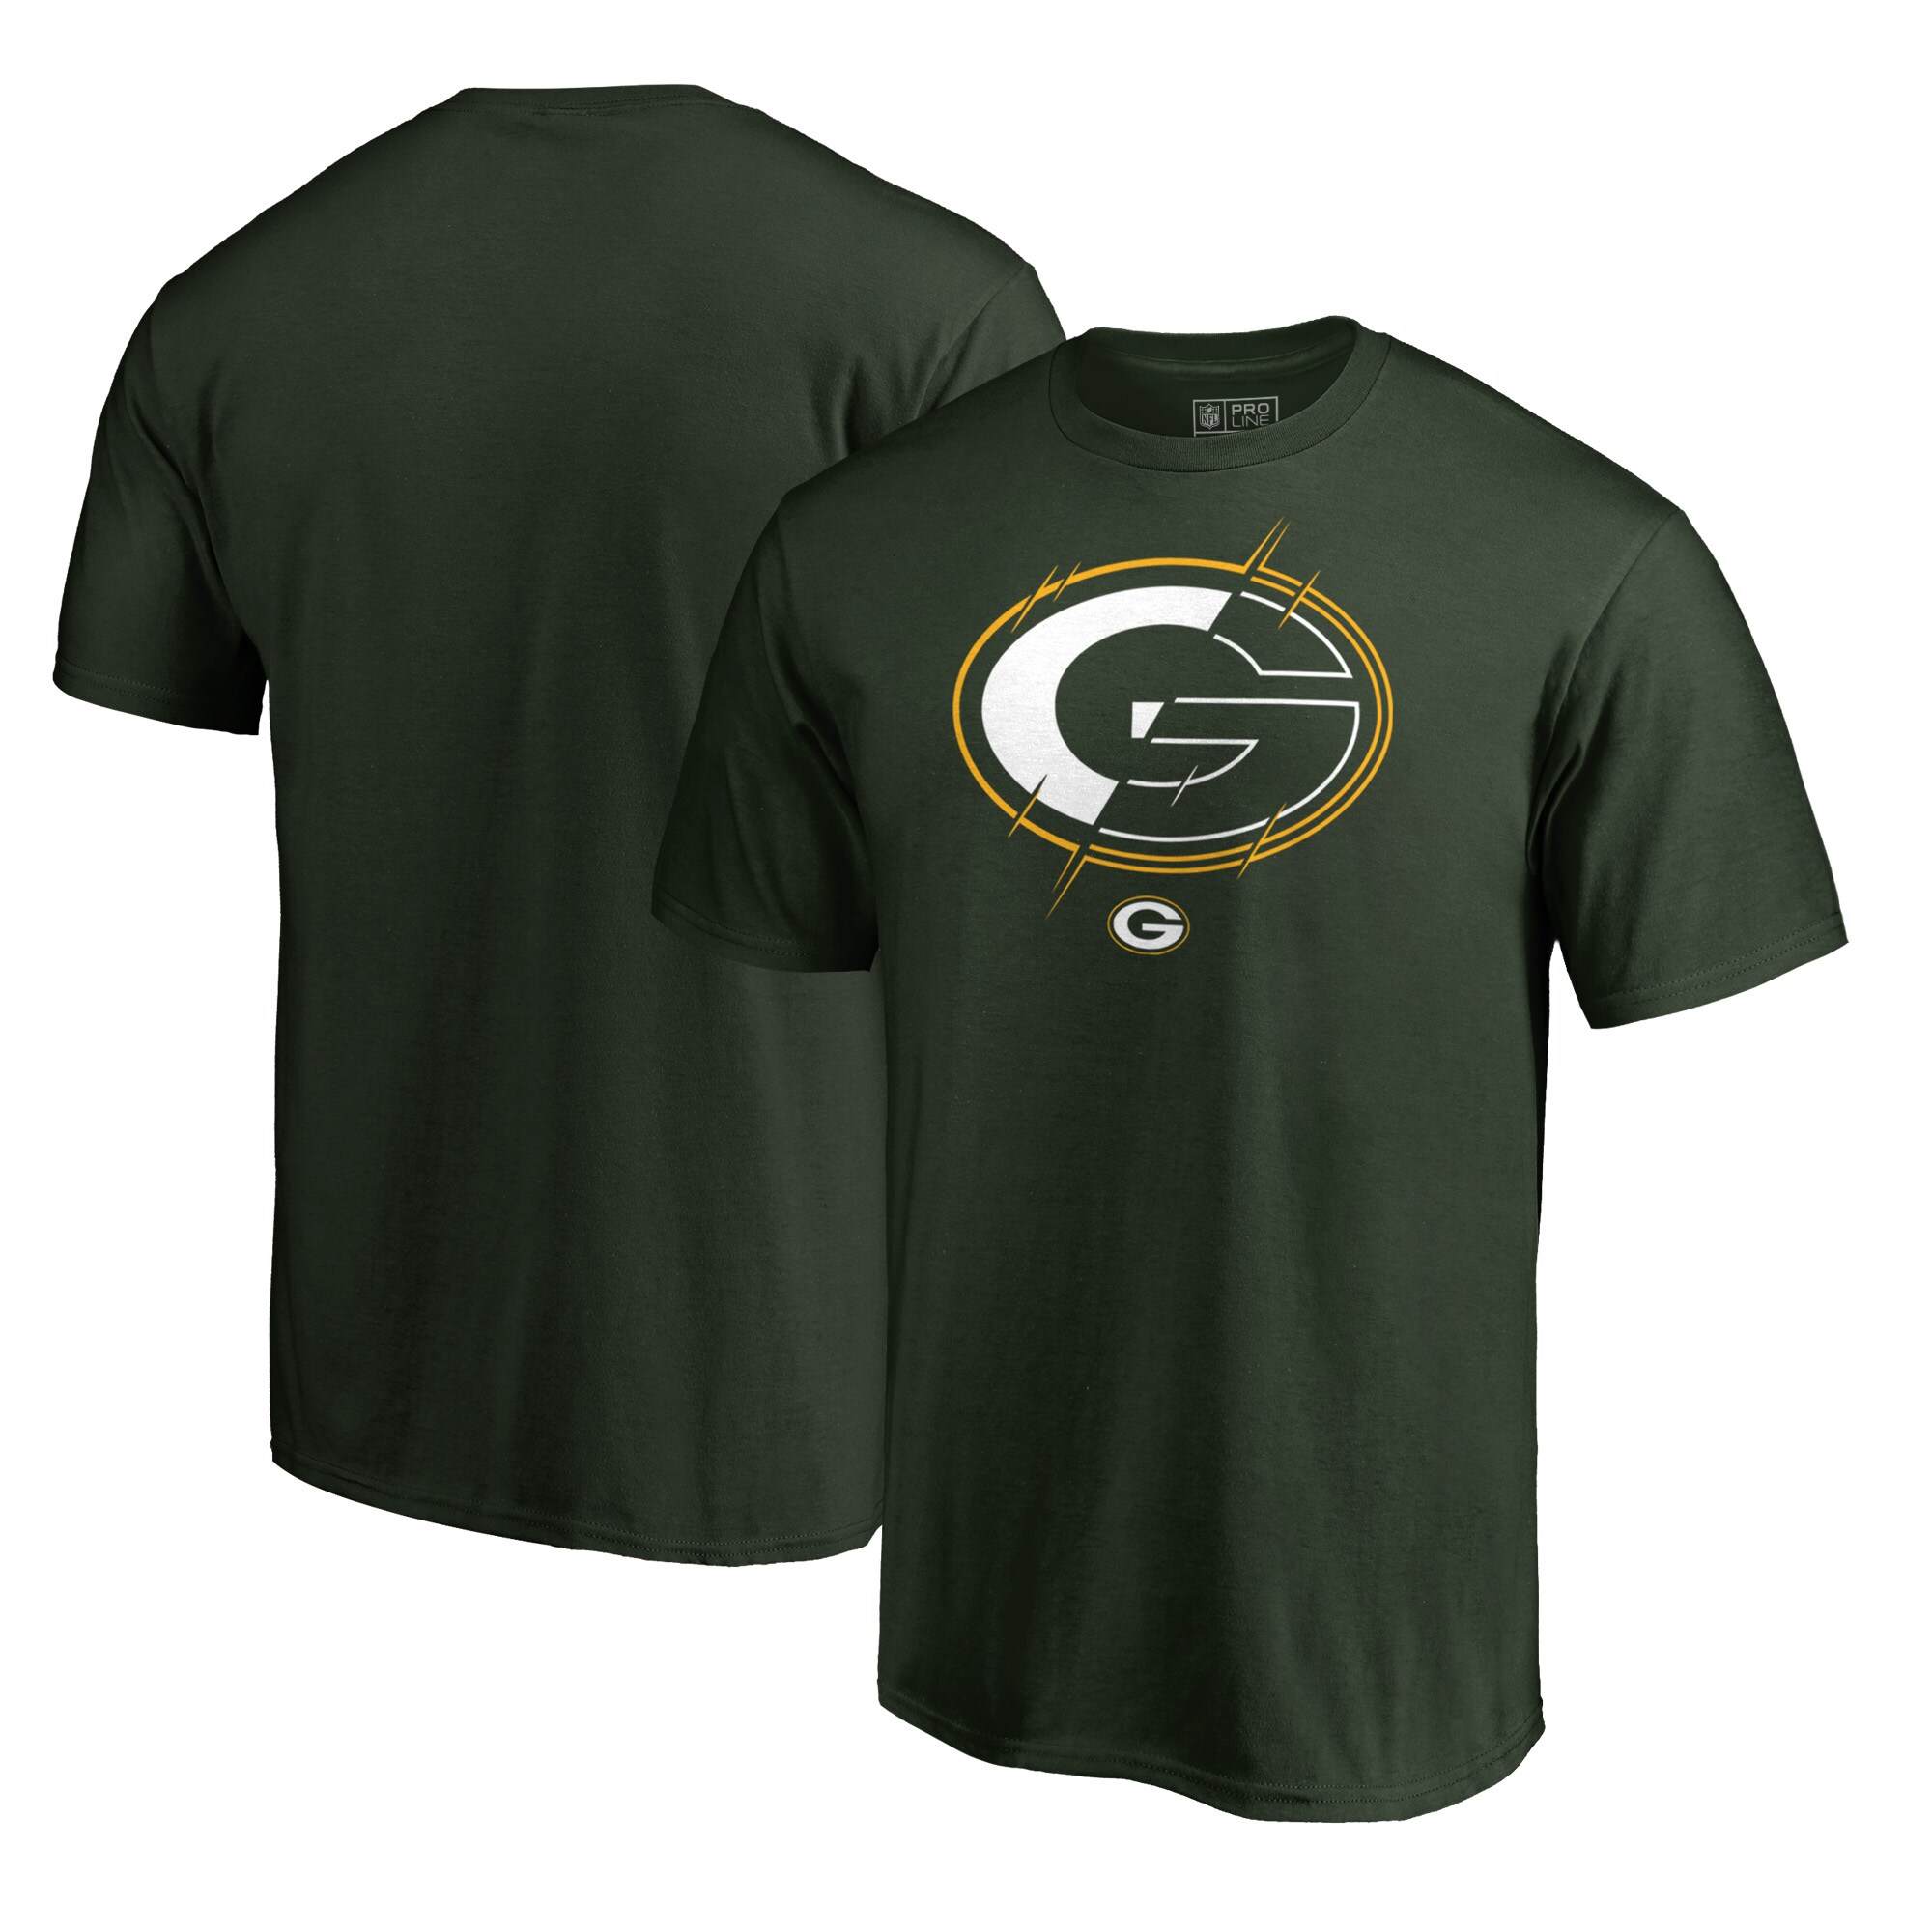 Green Bay Packers NFL Pro Line by Fanatics Branded X-Ray Big & Tall T-Shirt - Green